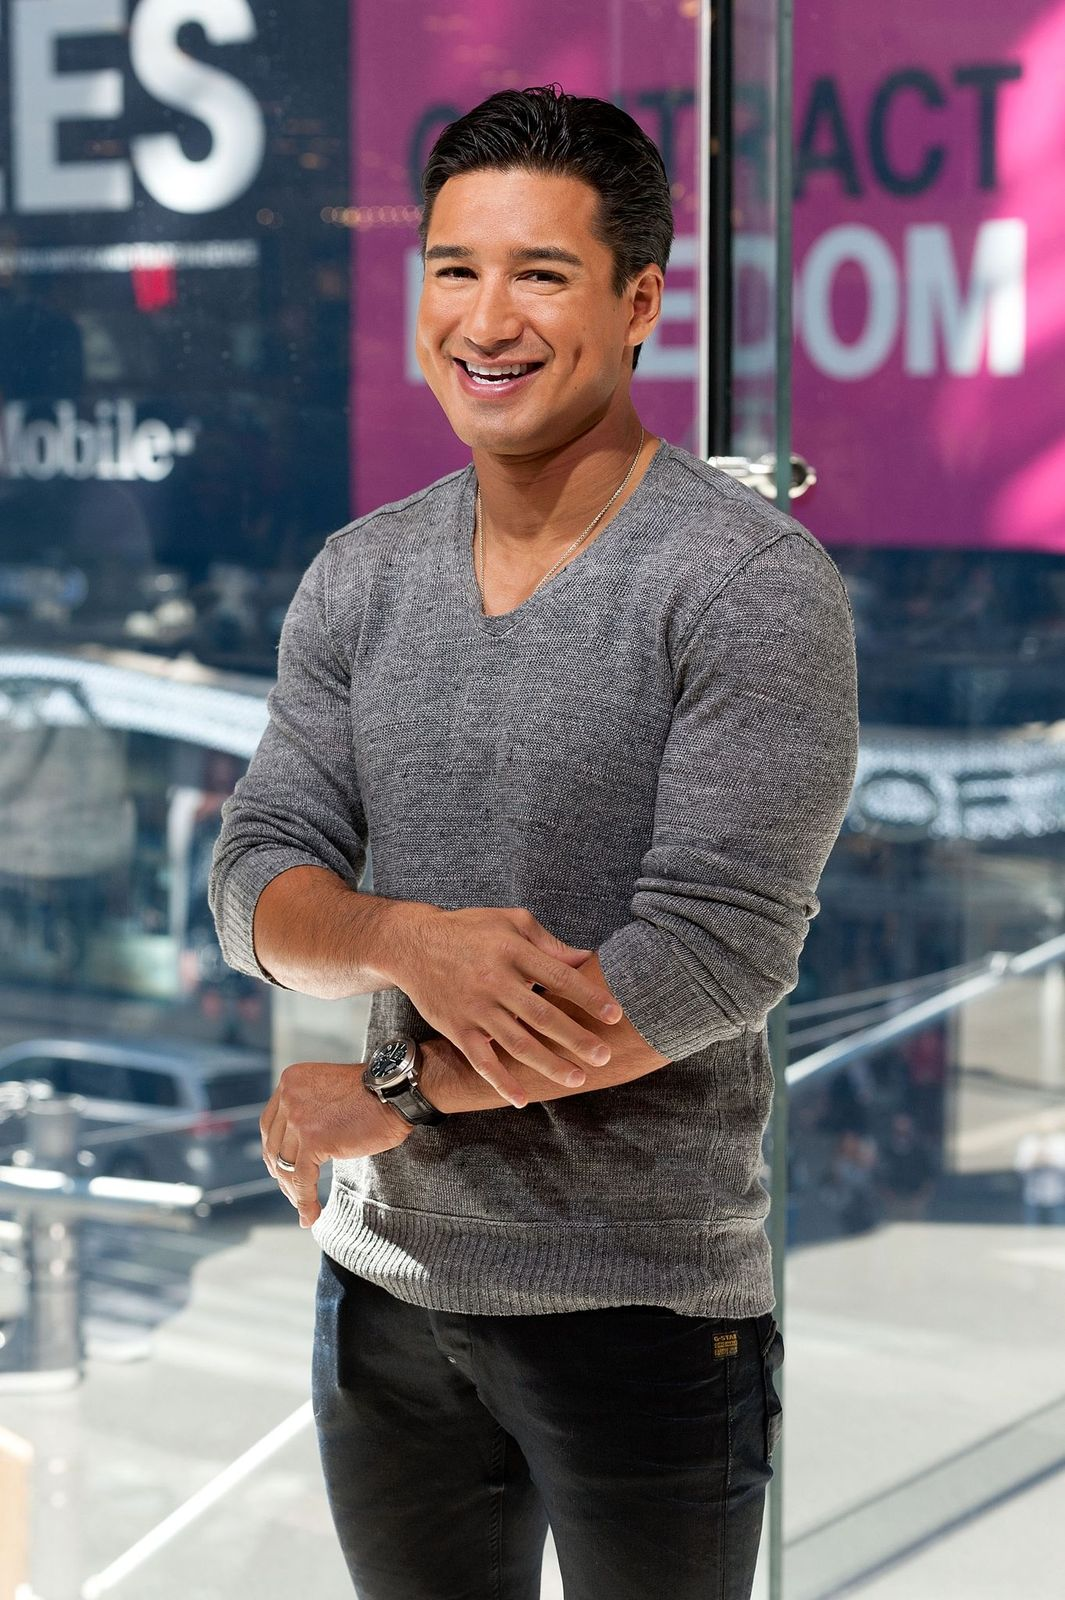 """Mario Lopez hosts """"Extra"""" at their New York studios in Times Square on October 6, 2014, in New York City 